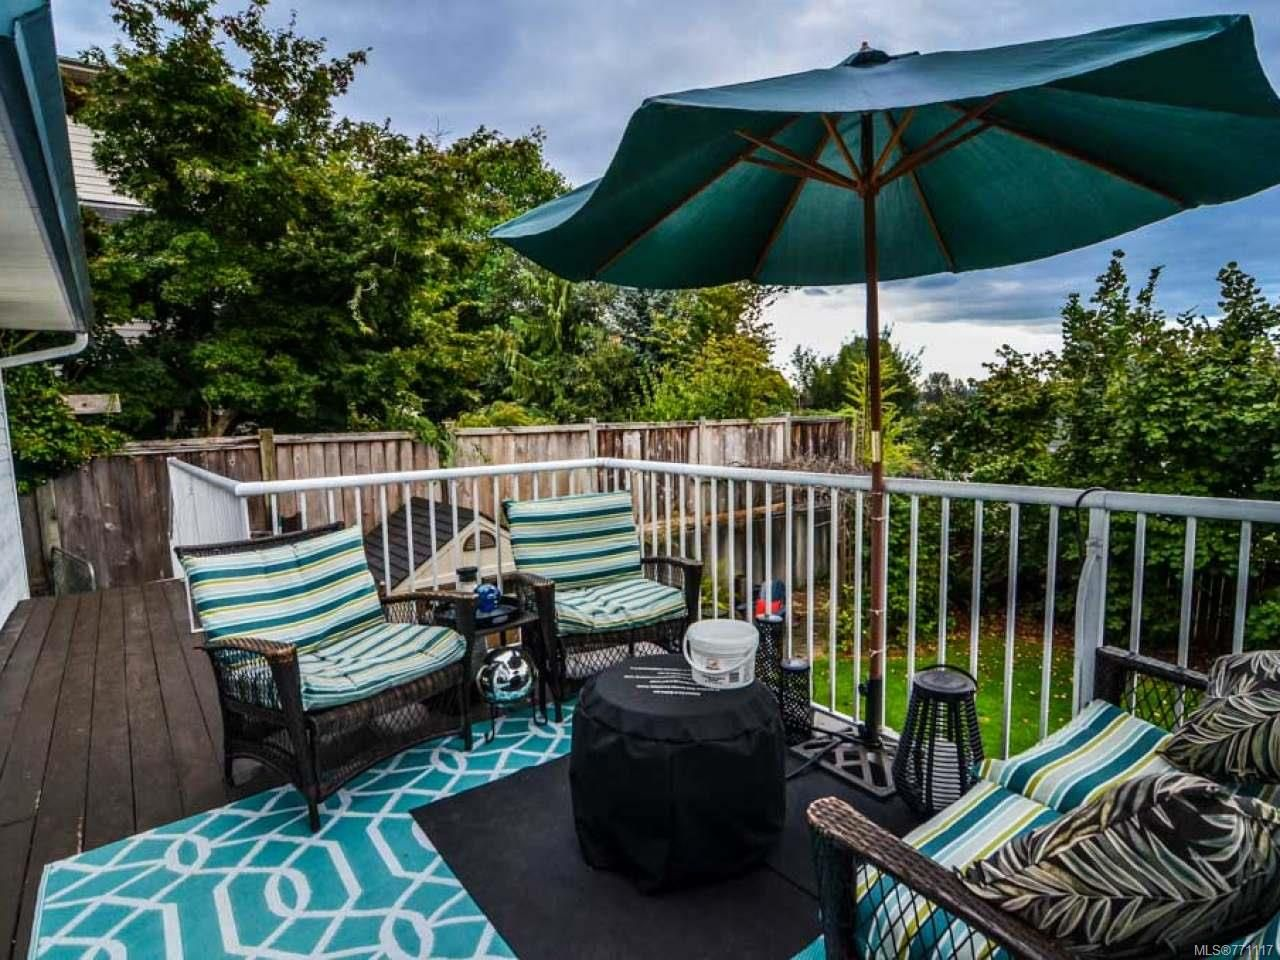 Photo 10: Photos: 697 Steenbuck Dr in CAMPBELL RIVER: CR Campbell River Central House for sale (Campbell River)  : MLS®# 771117